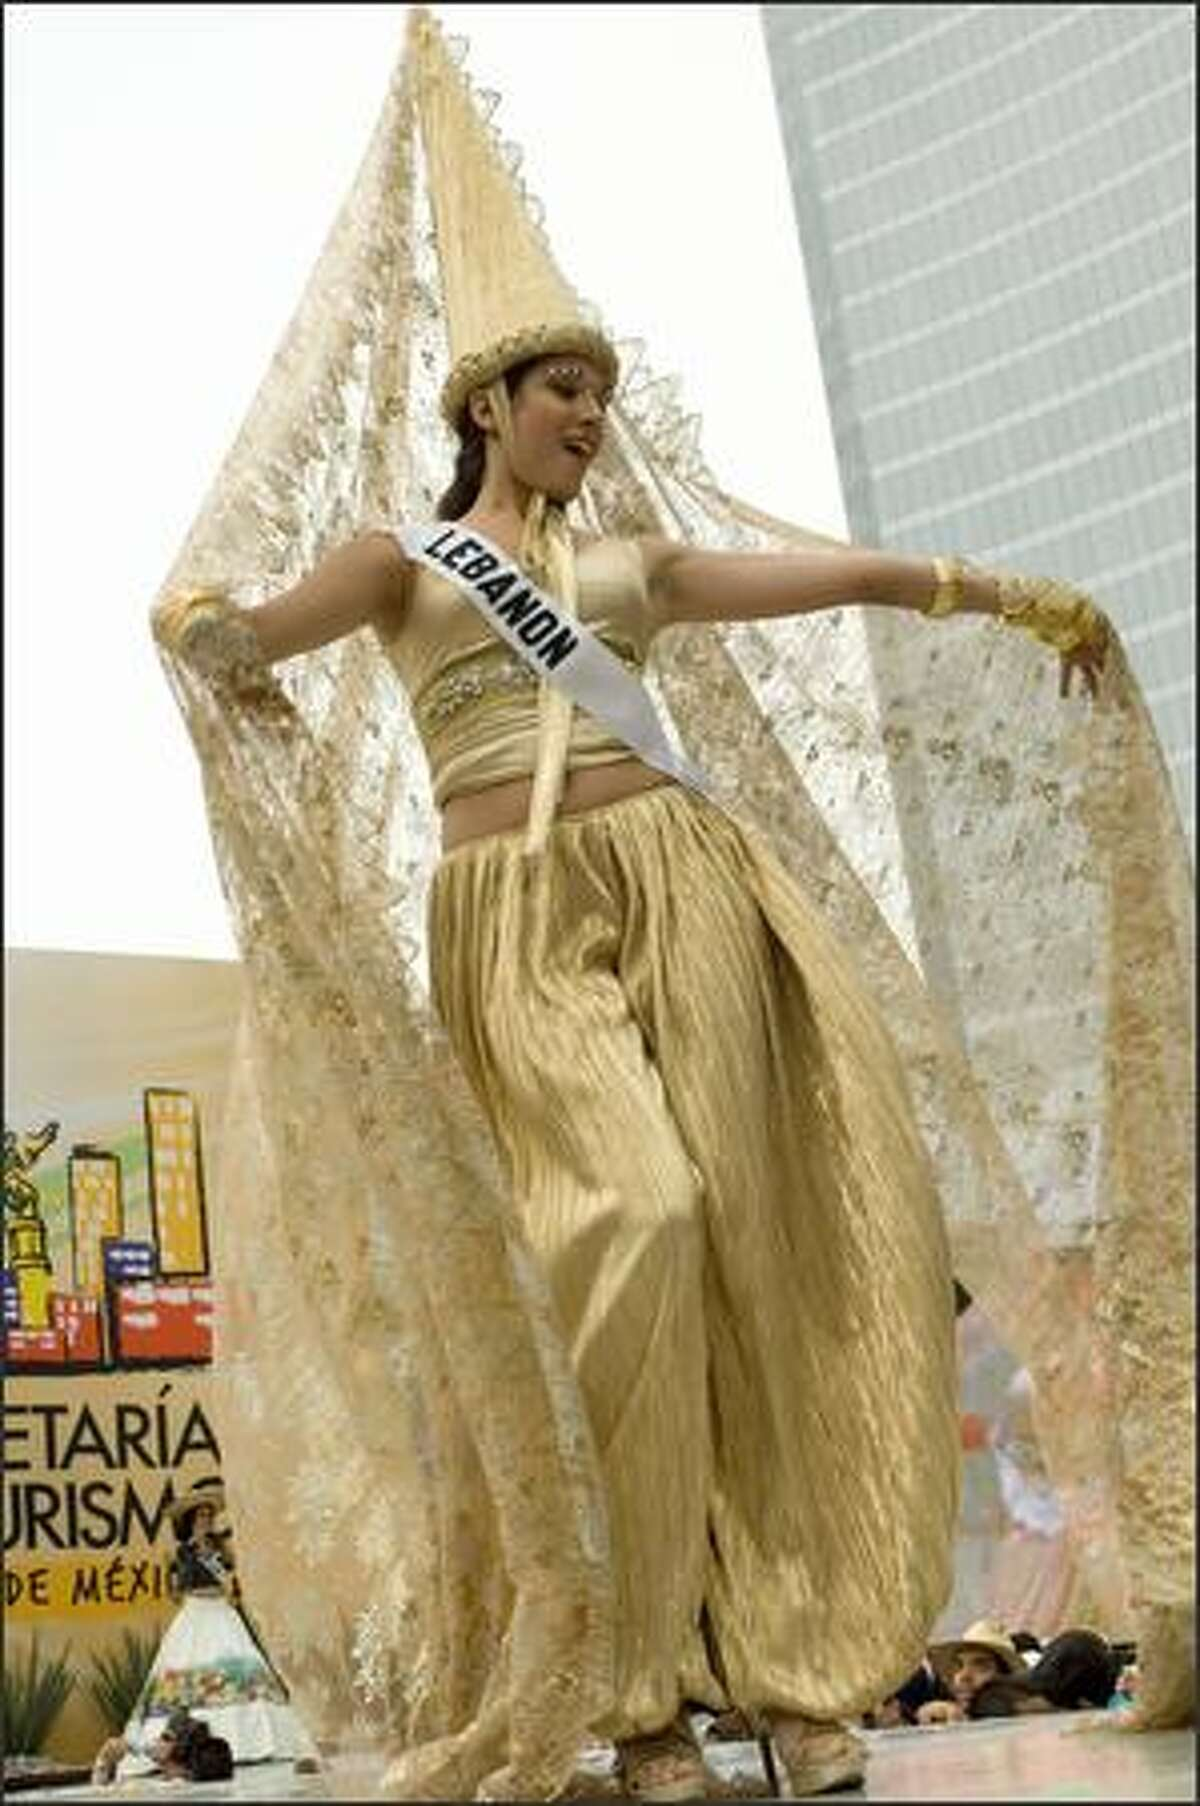 Nadine Njeim, Miss Lebanon 2007, at the 2007 Miss Universe National Costume Show at the Angel of Independence in Mexico City on May 20.